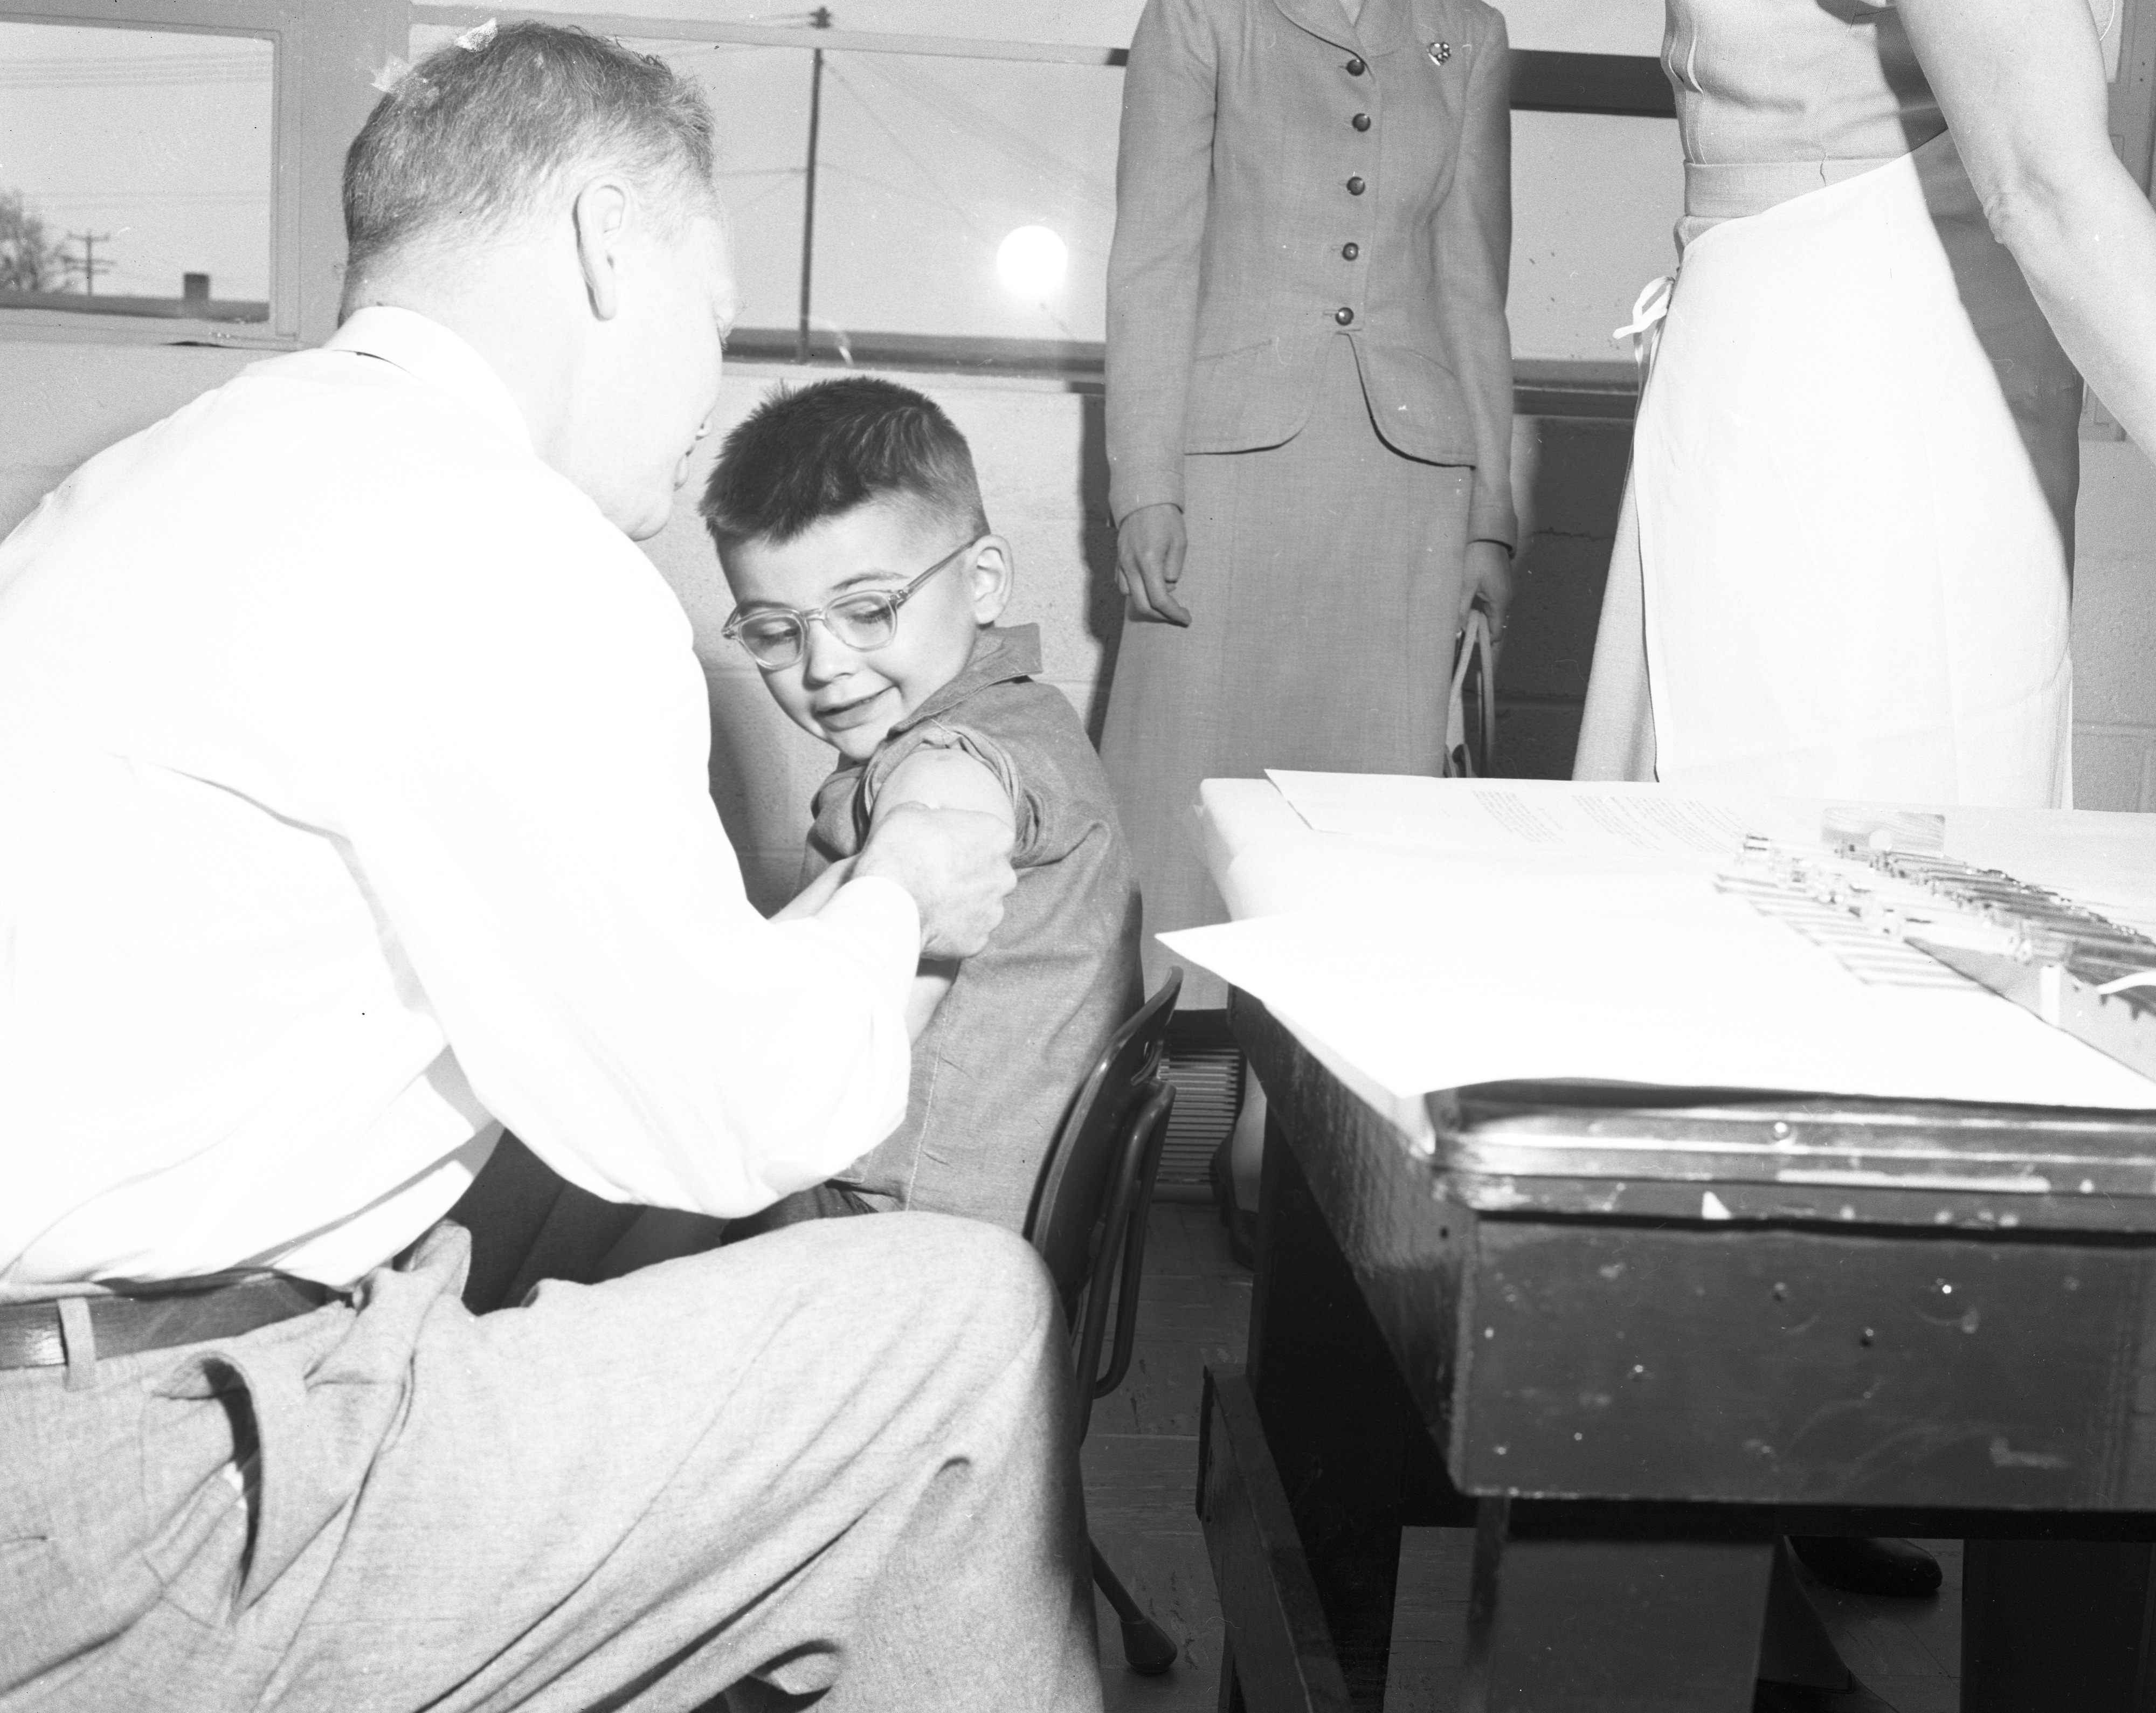 Doctor prepares young boy for polio vaccine, April 1955 image